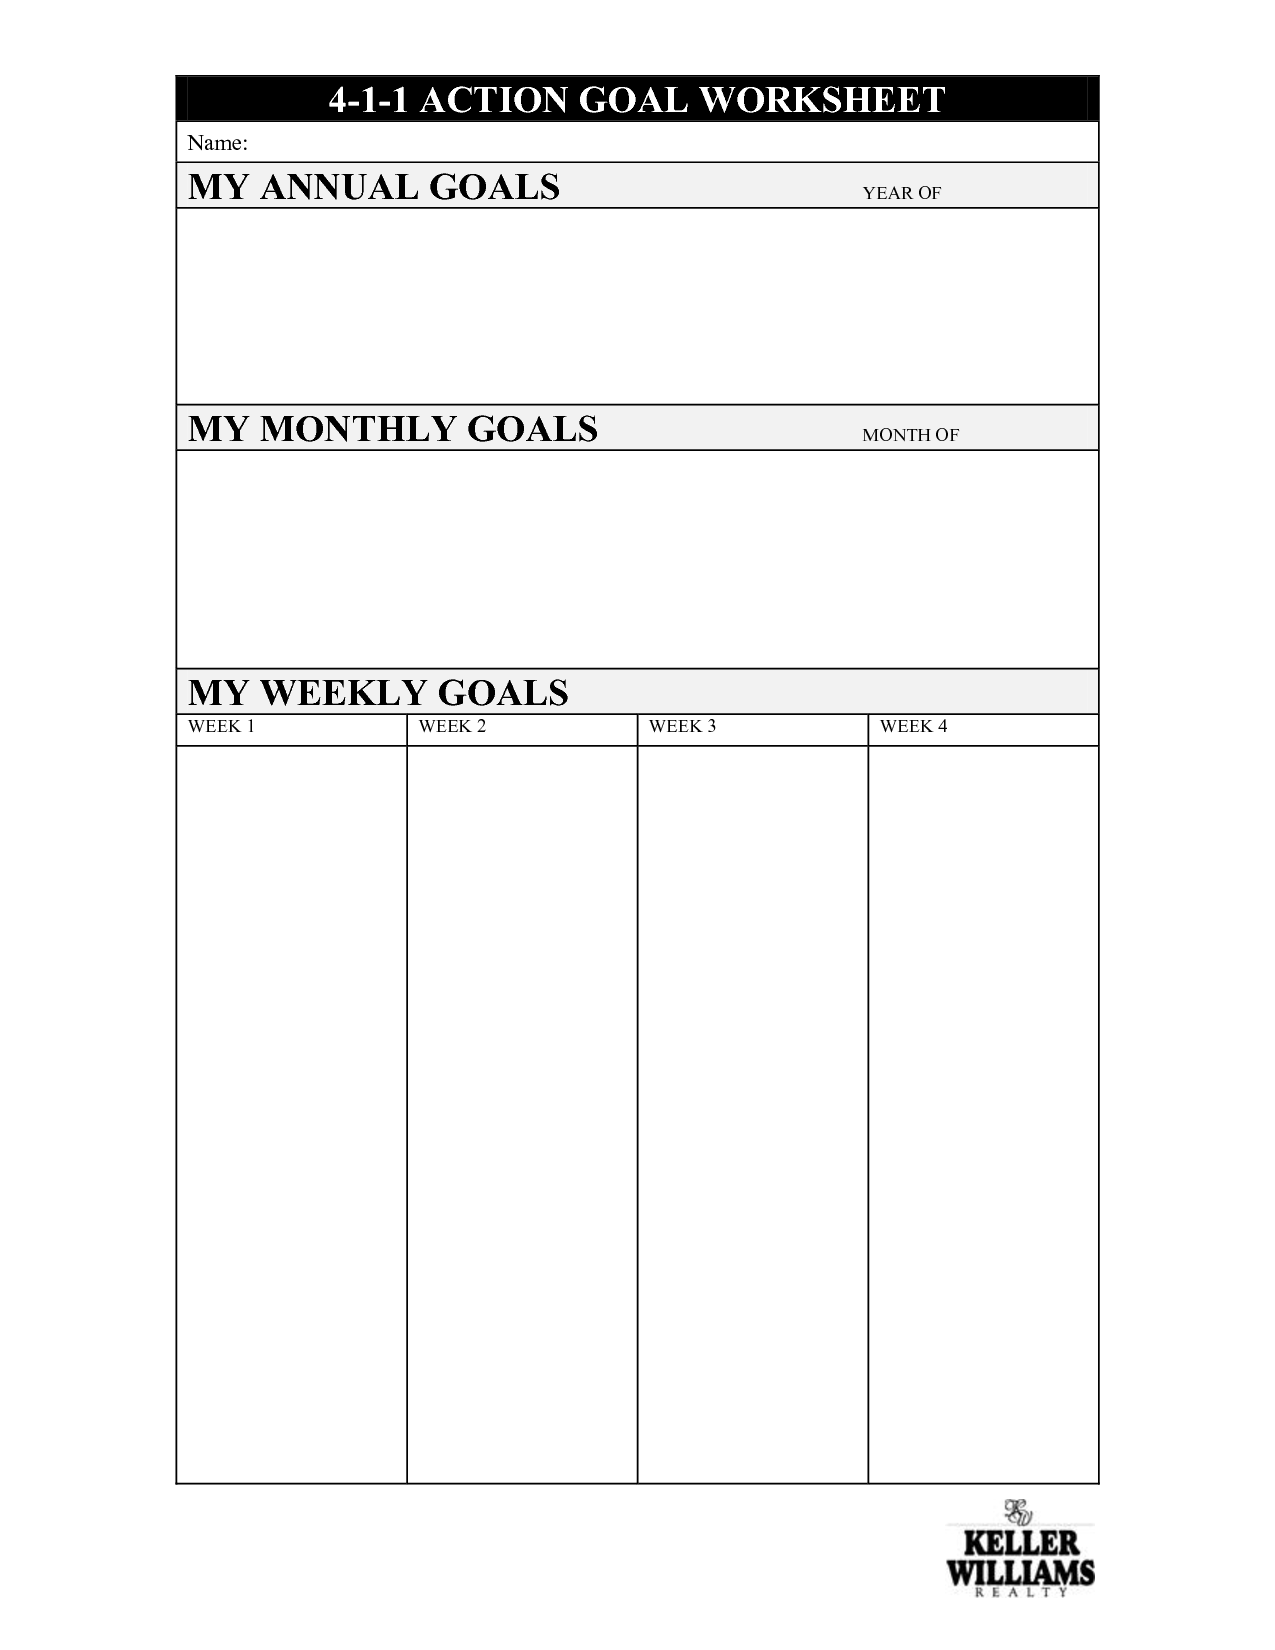 13 Best Images Of My Goals Worksheet